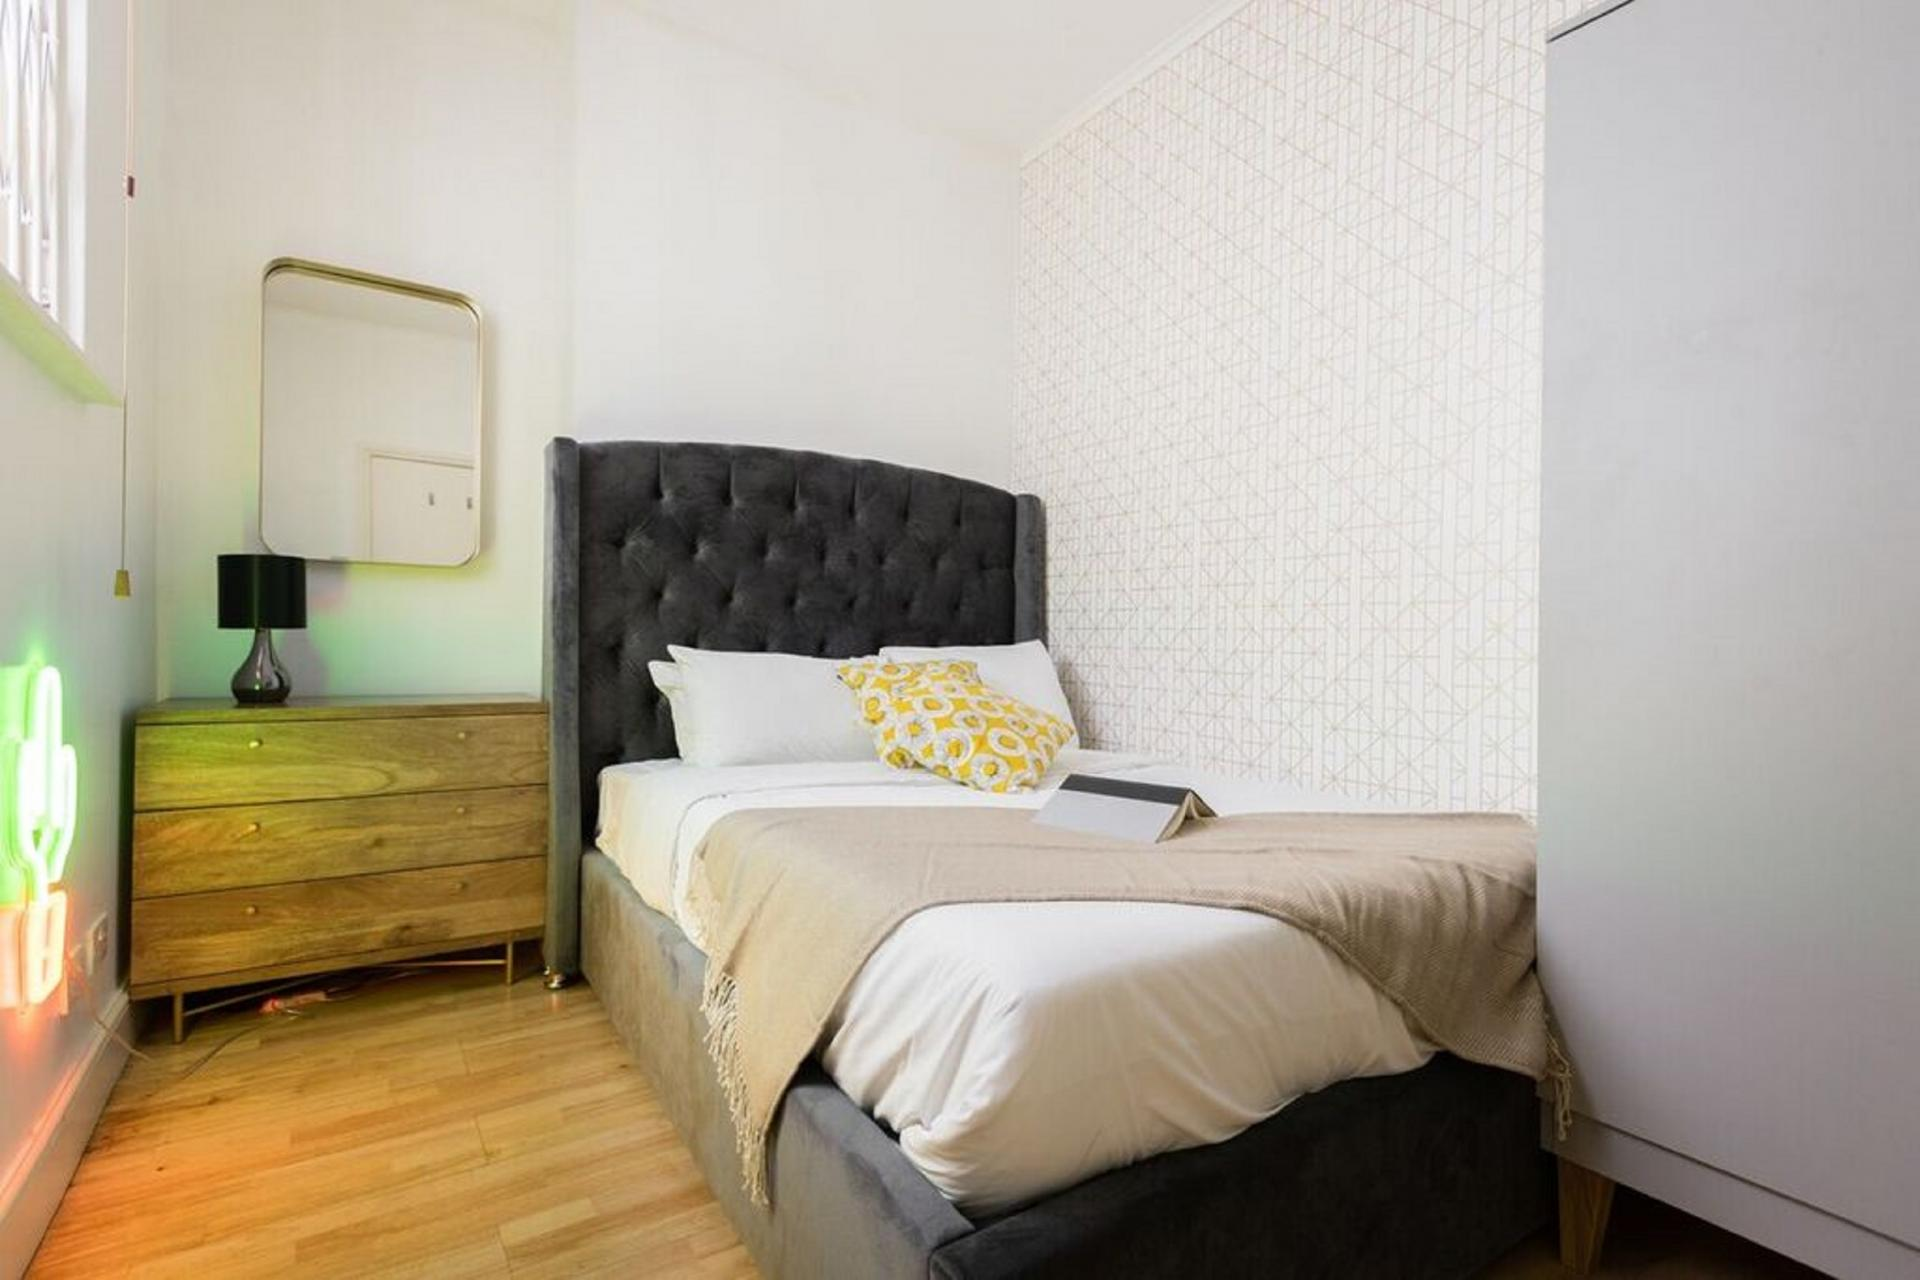 Bedroom 2 The Bayswater Gardens House, Bayswater, London - Citybase Apartments